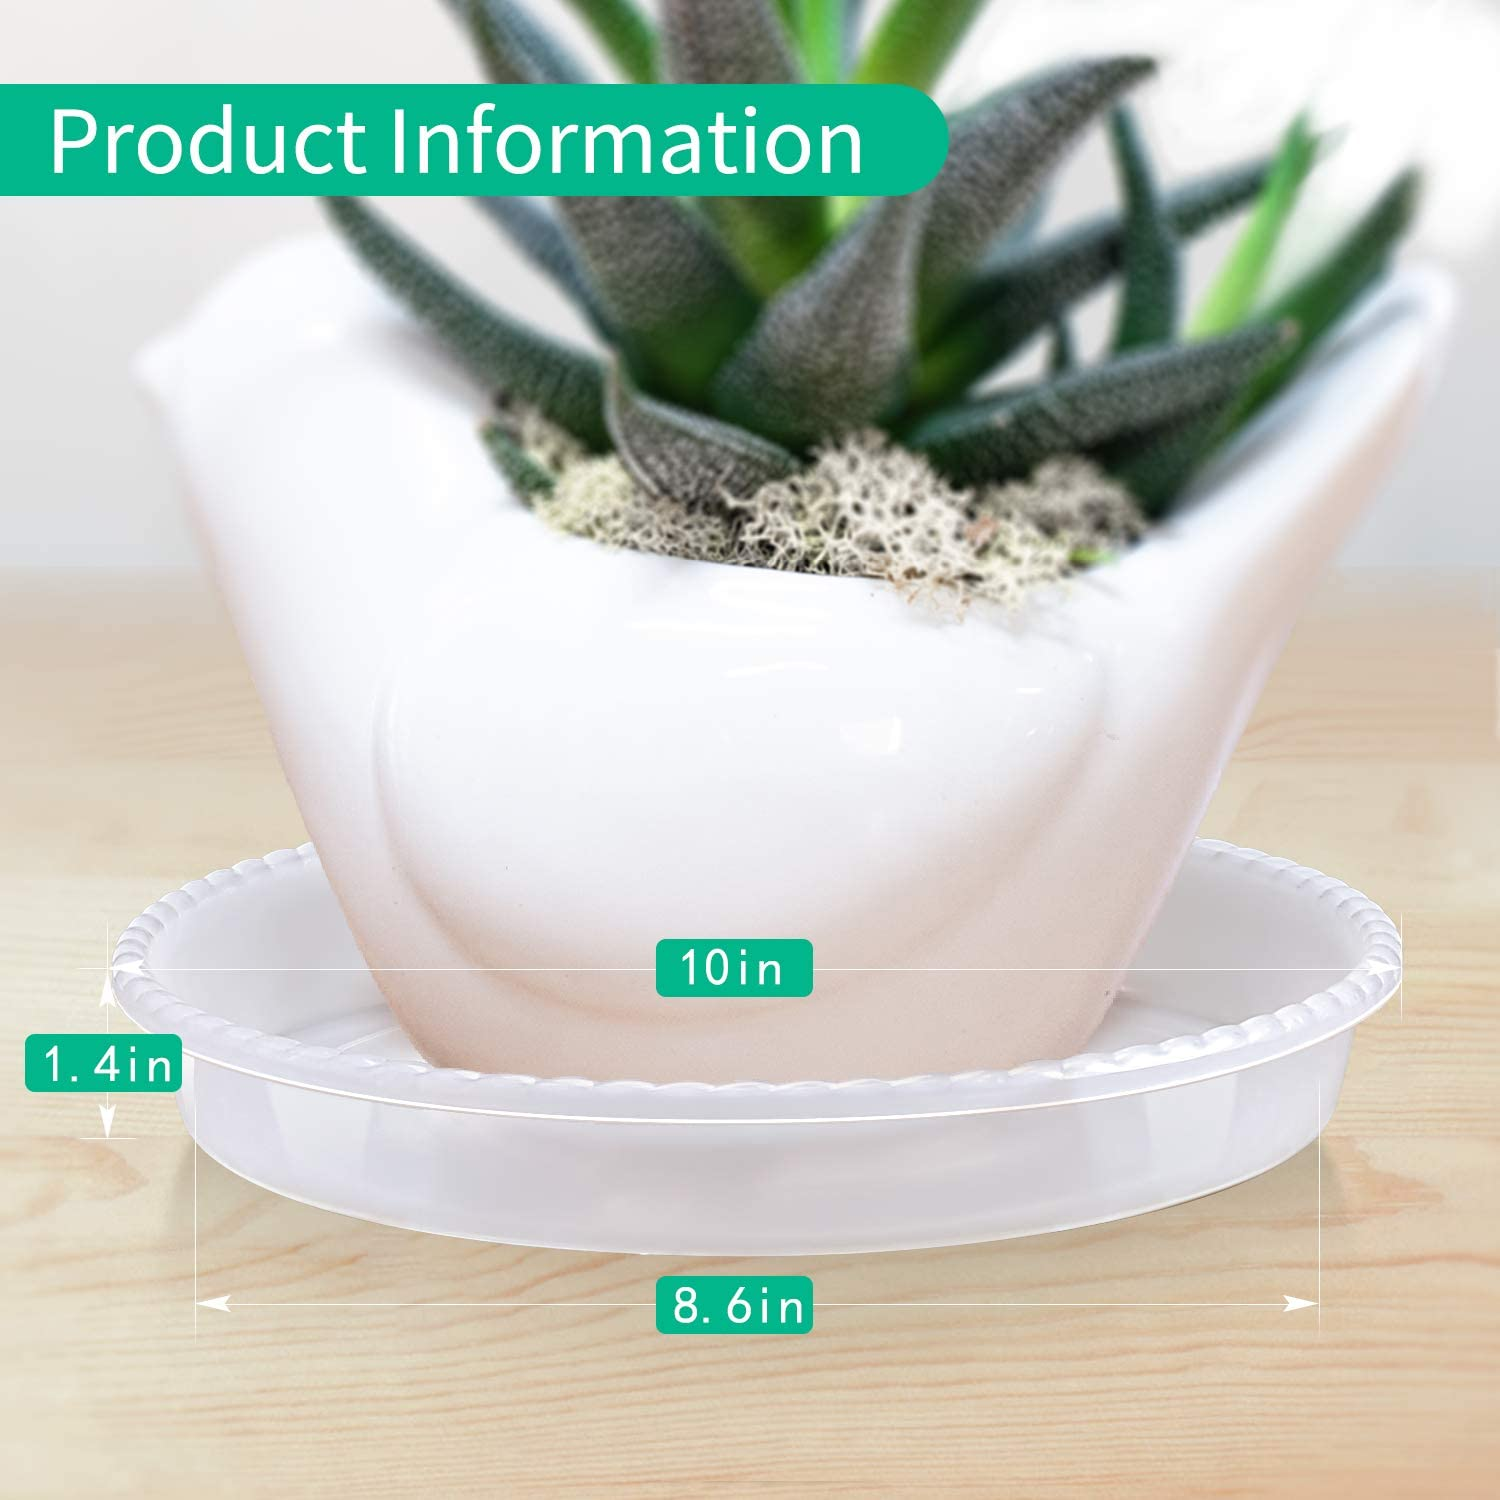 Round Plant Trays for Indoors EFFECTEER Plant Saucer 6-5 Pack Clear Plastic Plant Pot Saucers Durable Flower Pots with 5 Plant Labels 5 Pack 6 inch